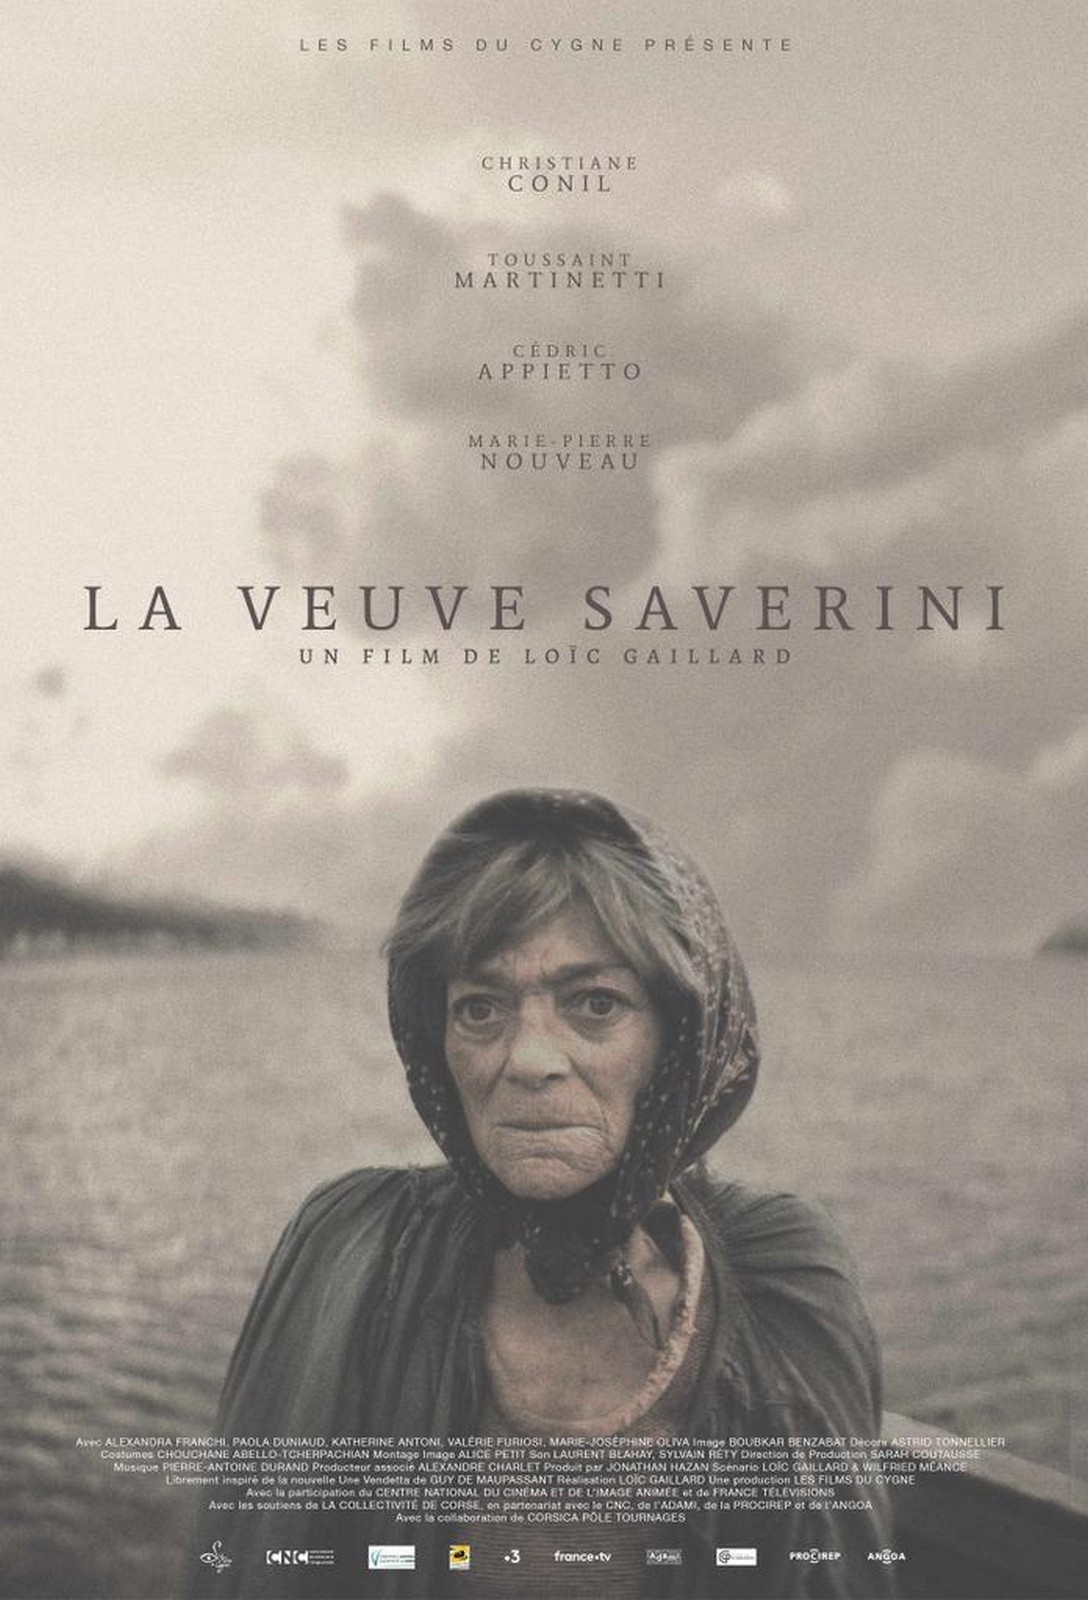 La veuve Saverini